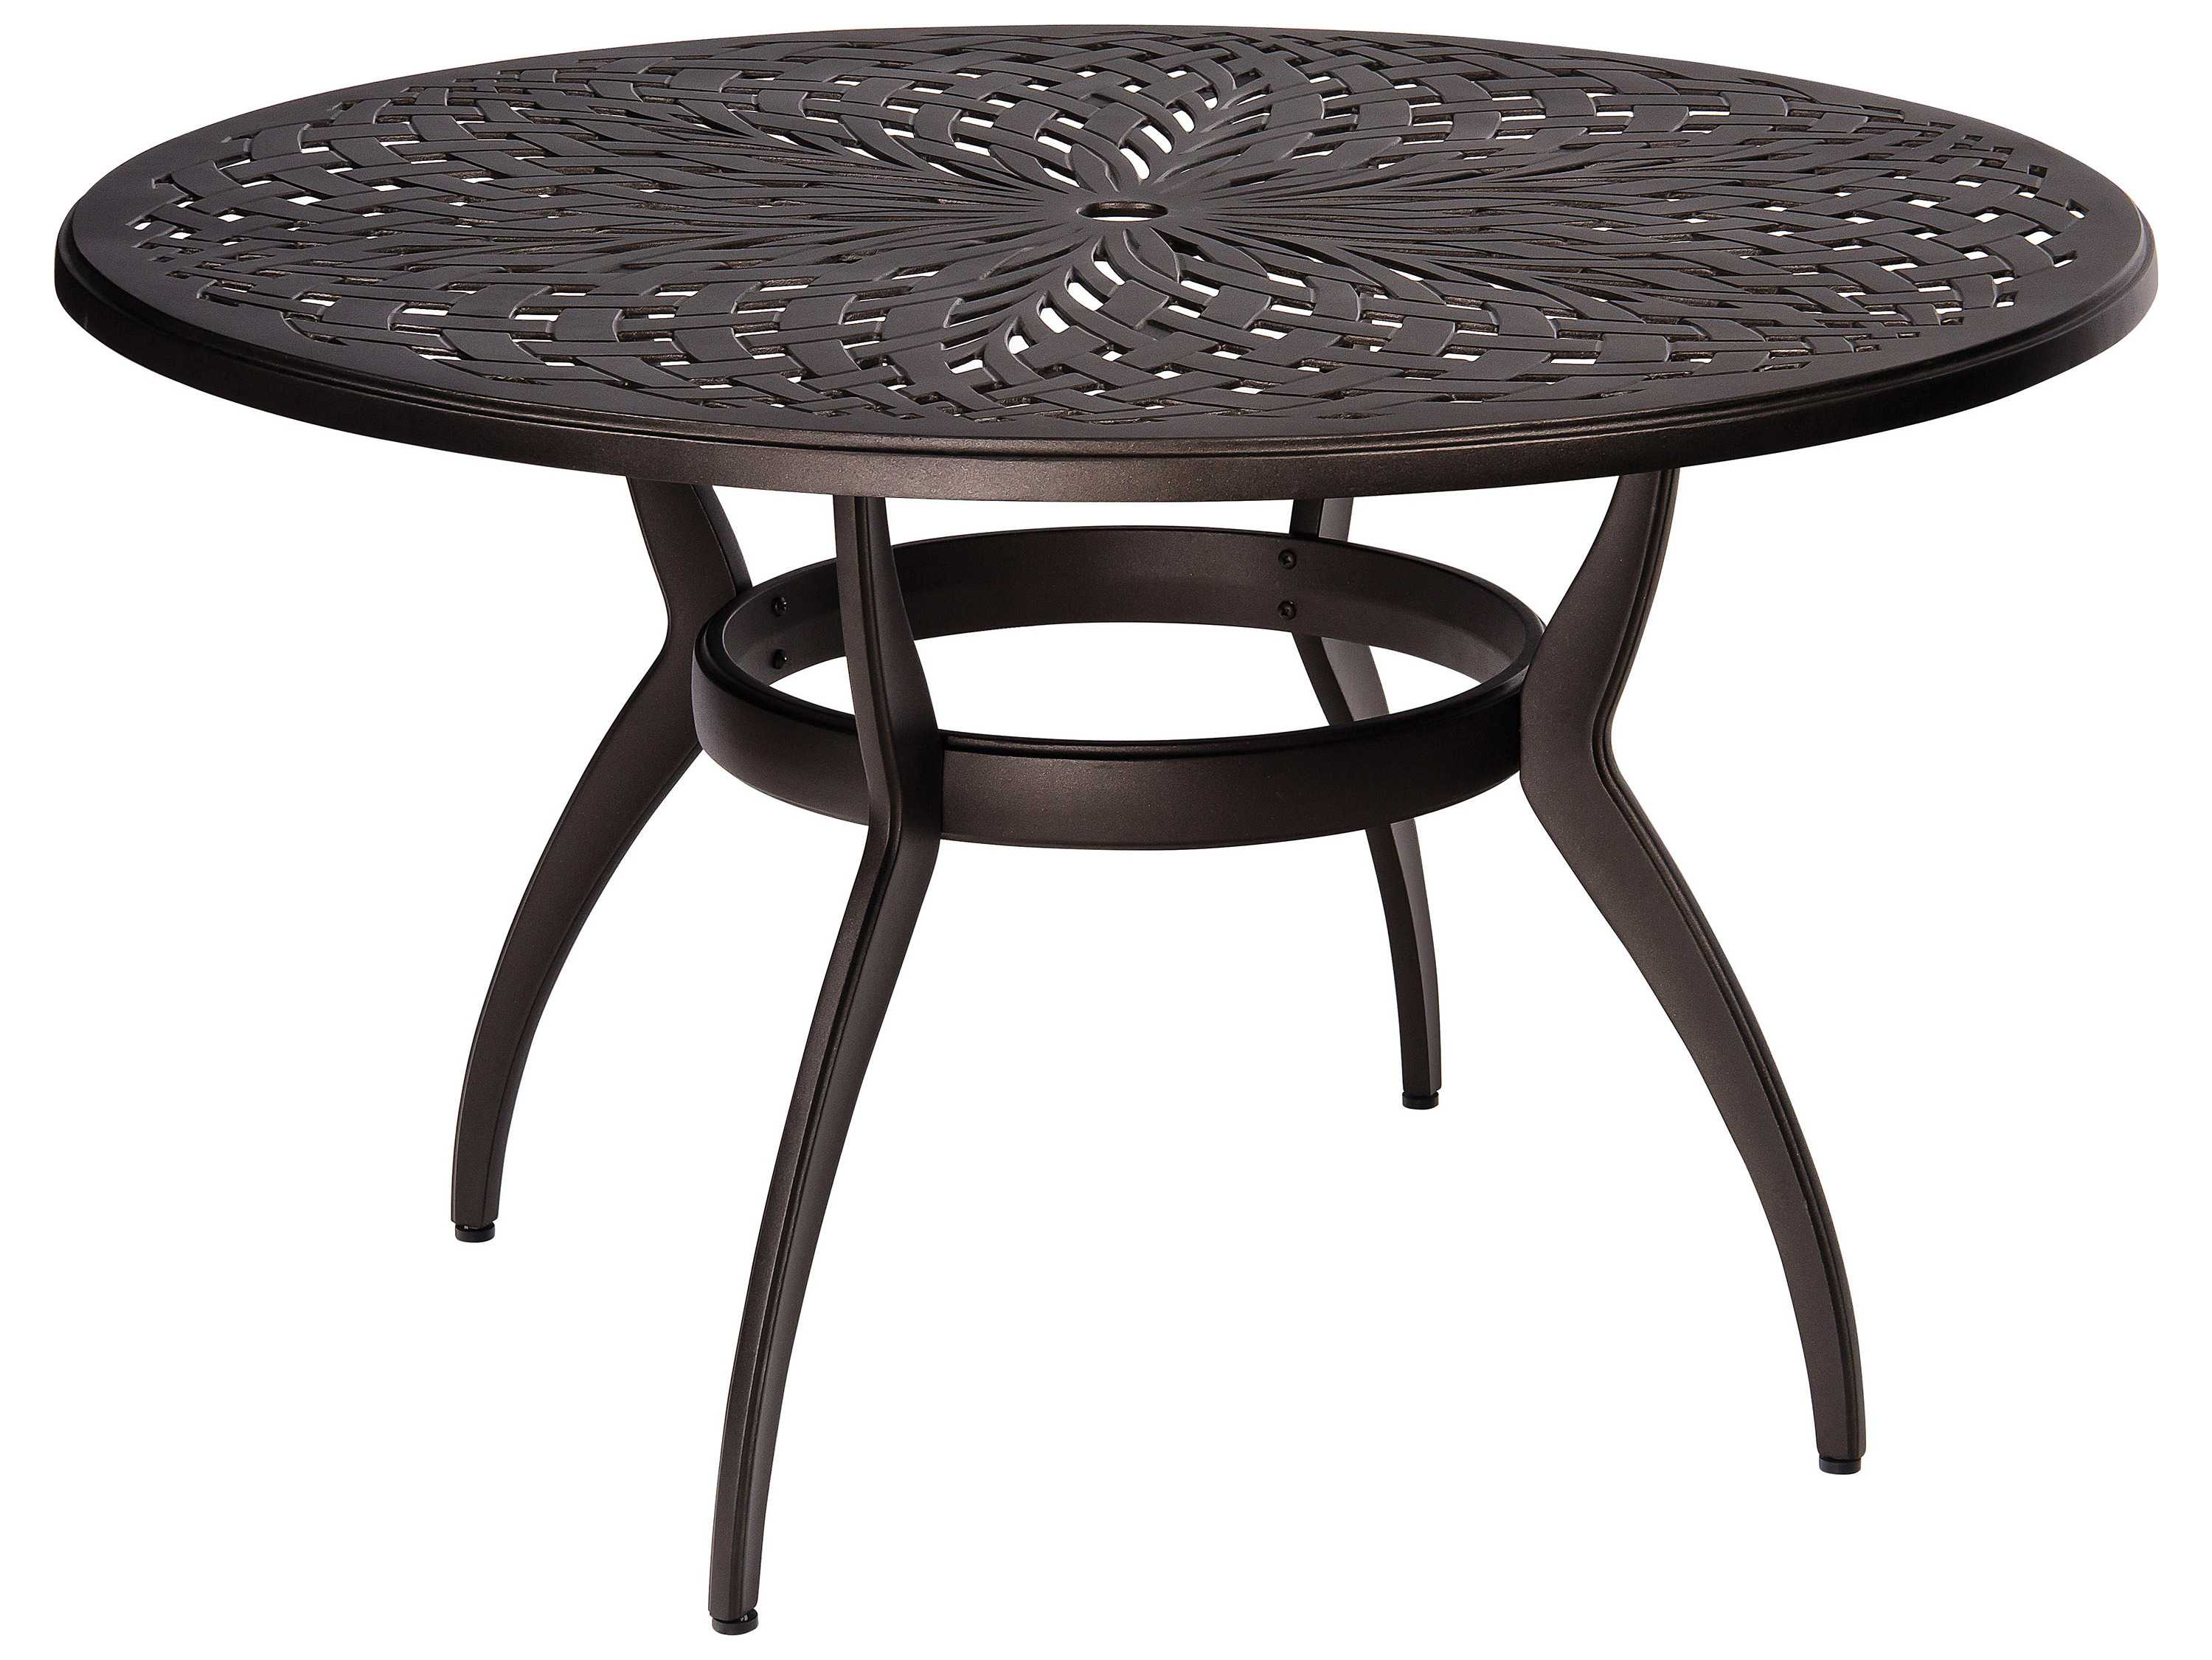 woodard apollo aluminum 48 round dining table with. Black Bedroom Furniture Sets. Home Design Ideas